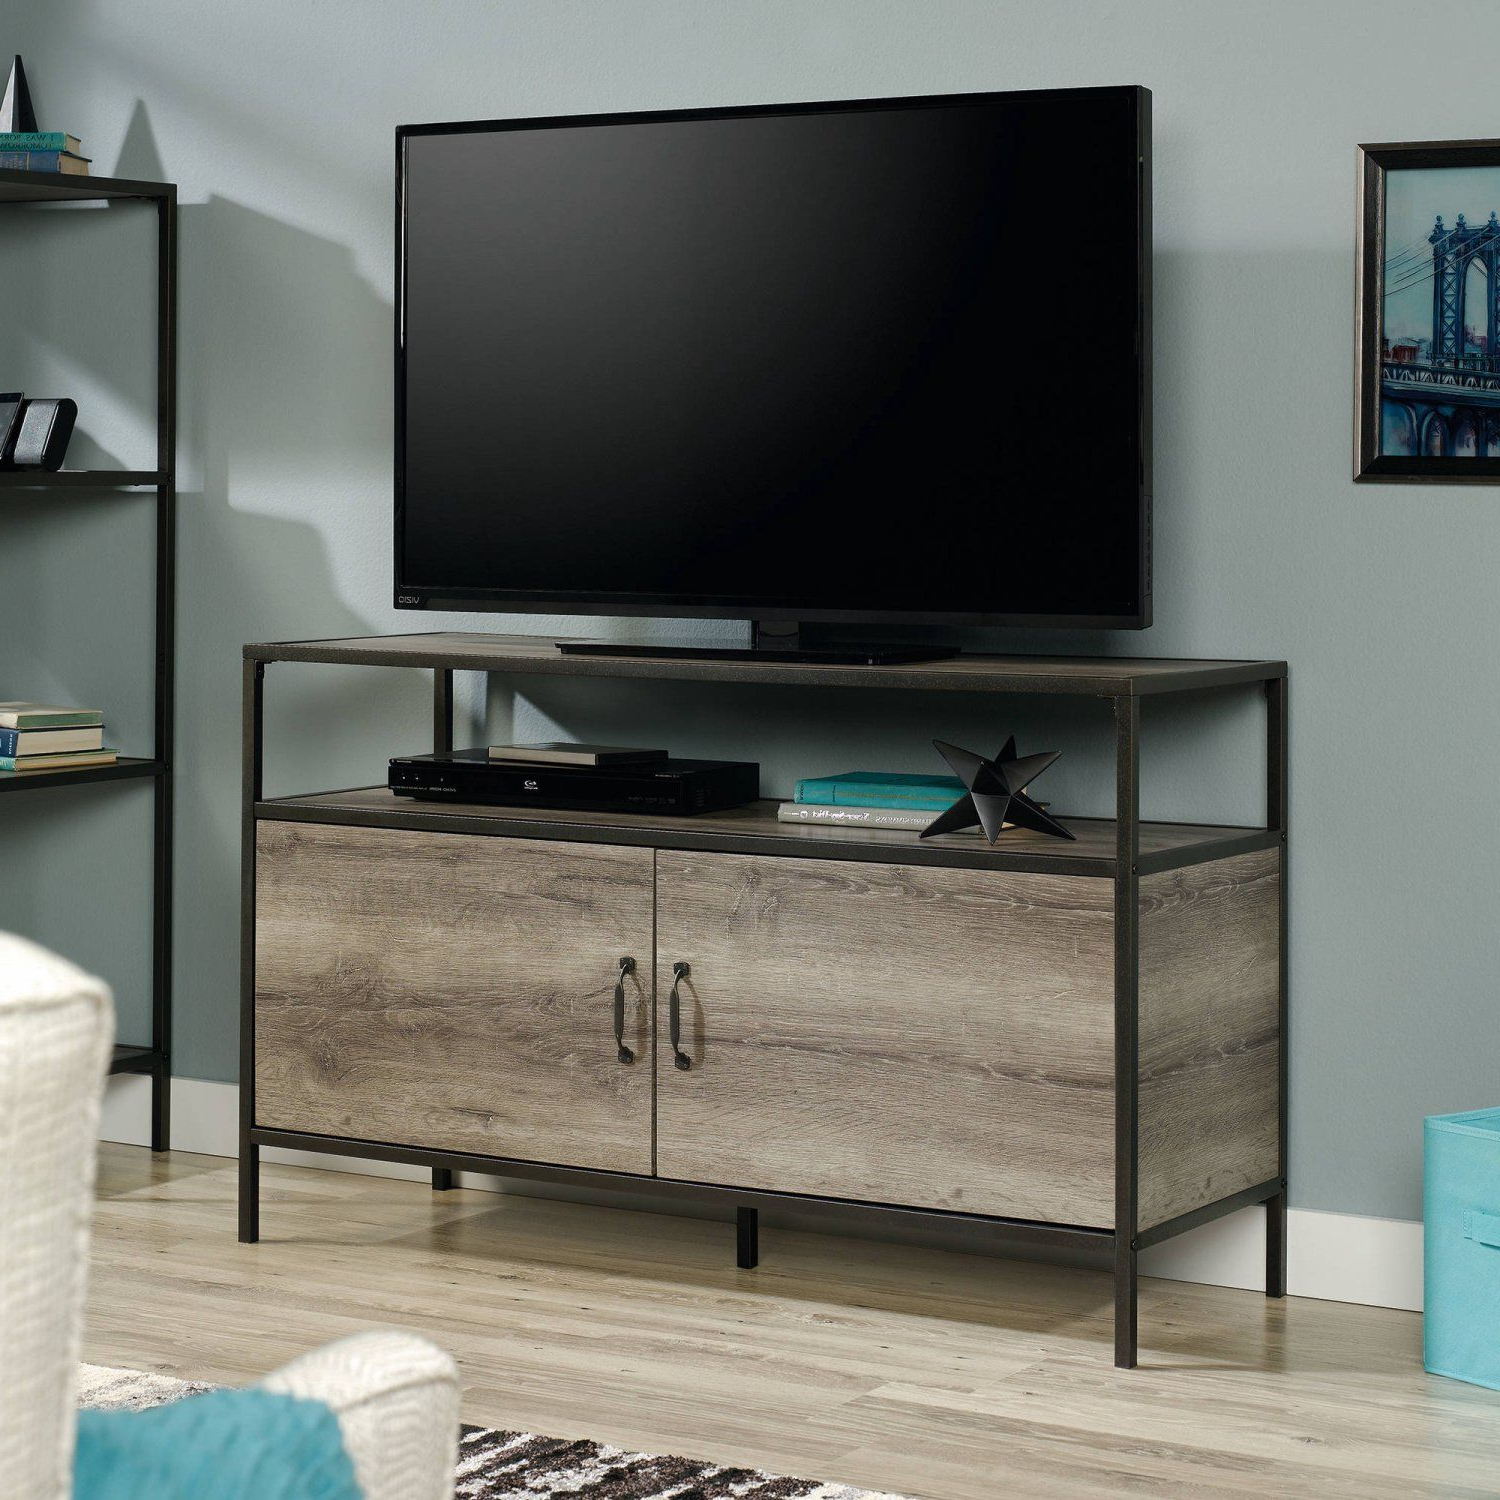 "Tv Cabinets With Storage Within Well Known Wood Metal Tv Stand 50"" With Grey Oak Storage Cabinets Media Table (View 16 of 20)"